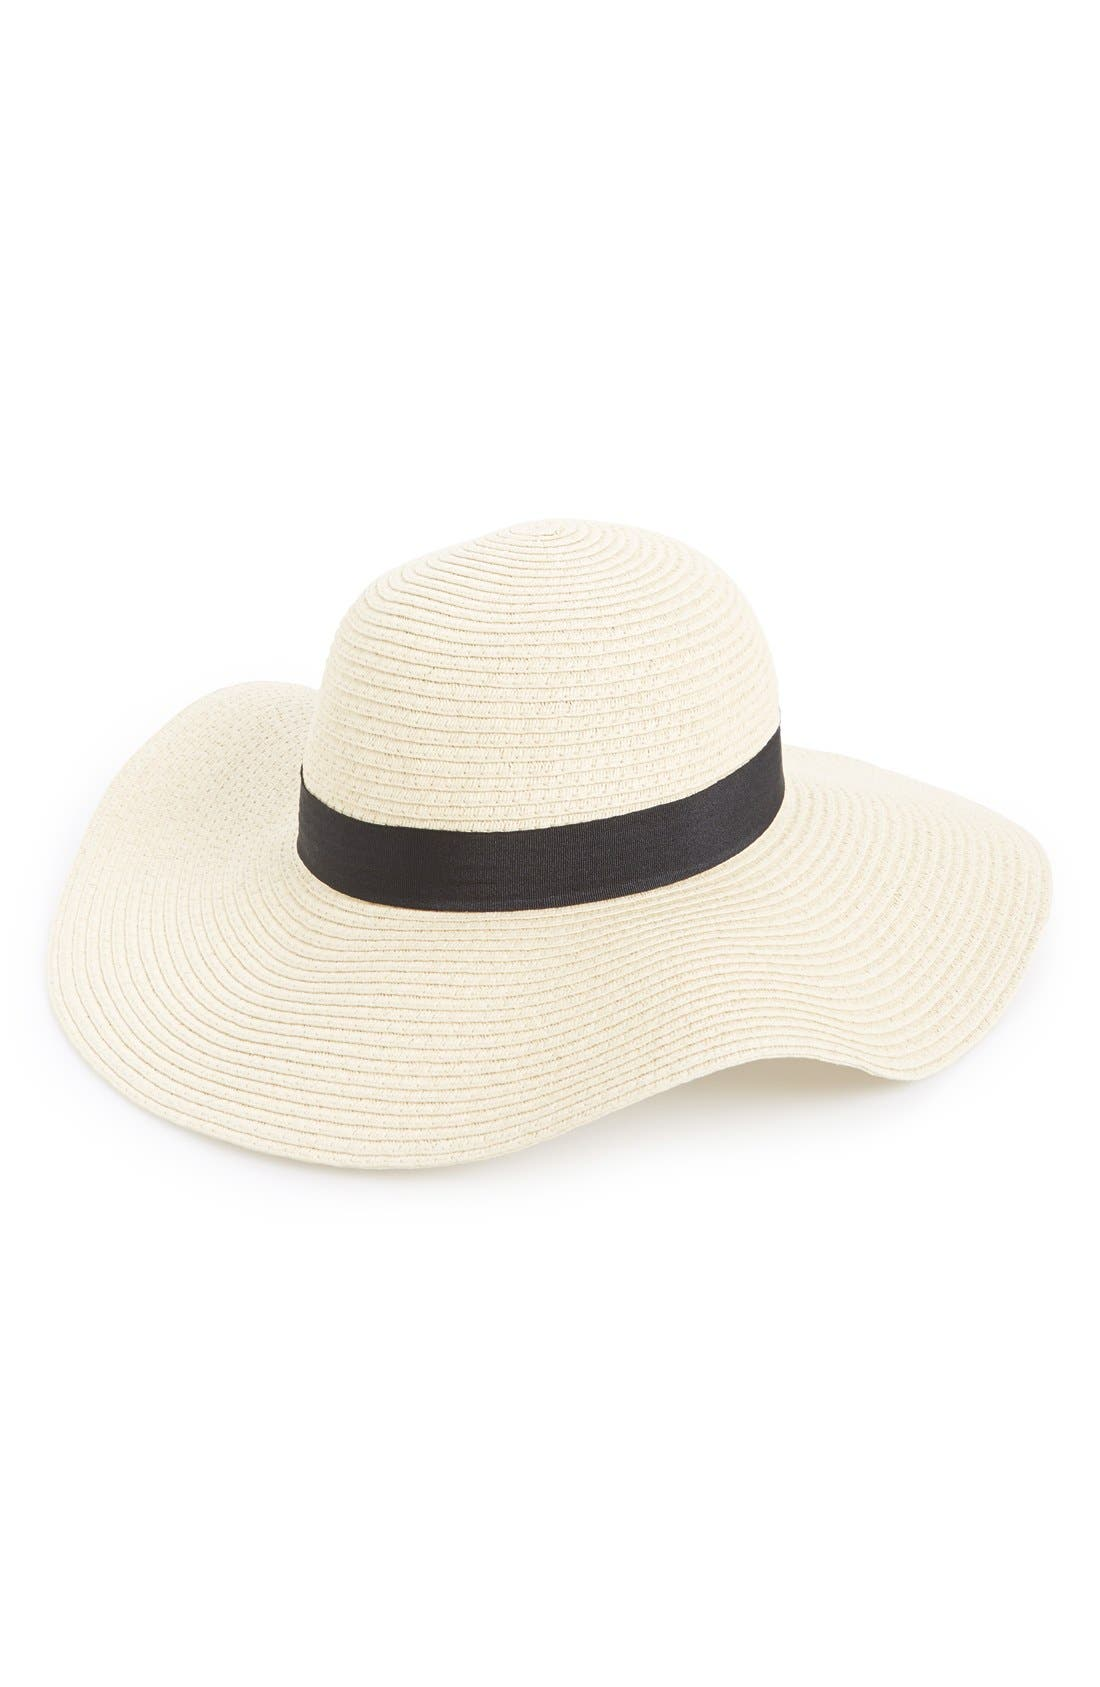 Main Image - Amici Accessories Floppy Straw Hat